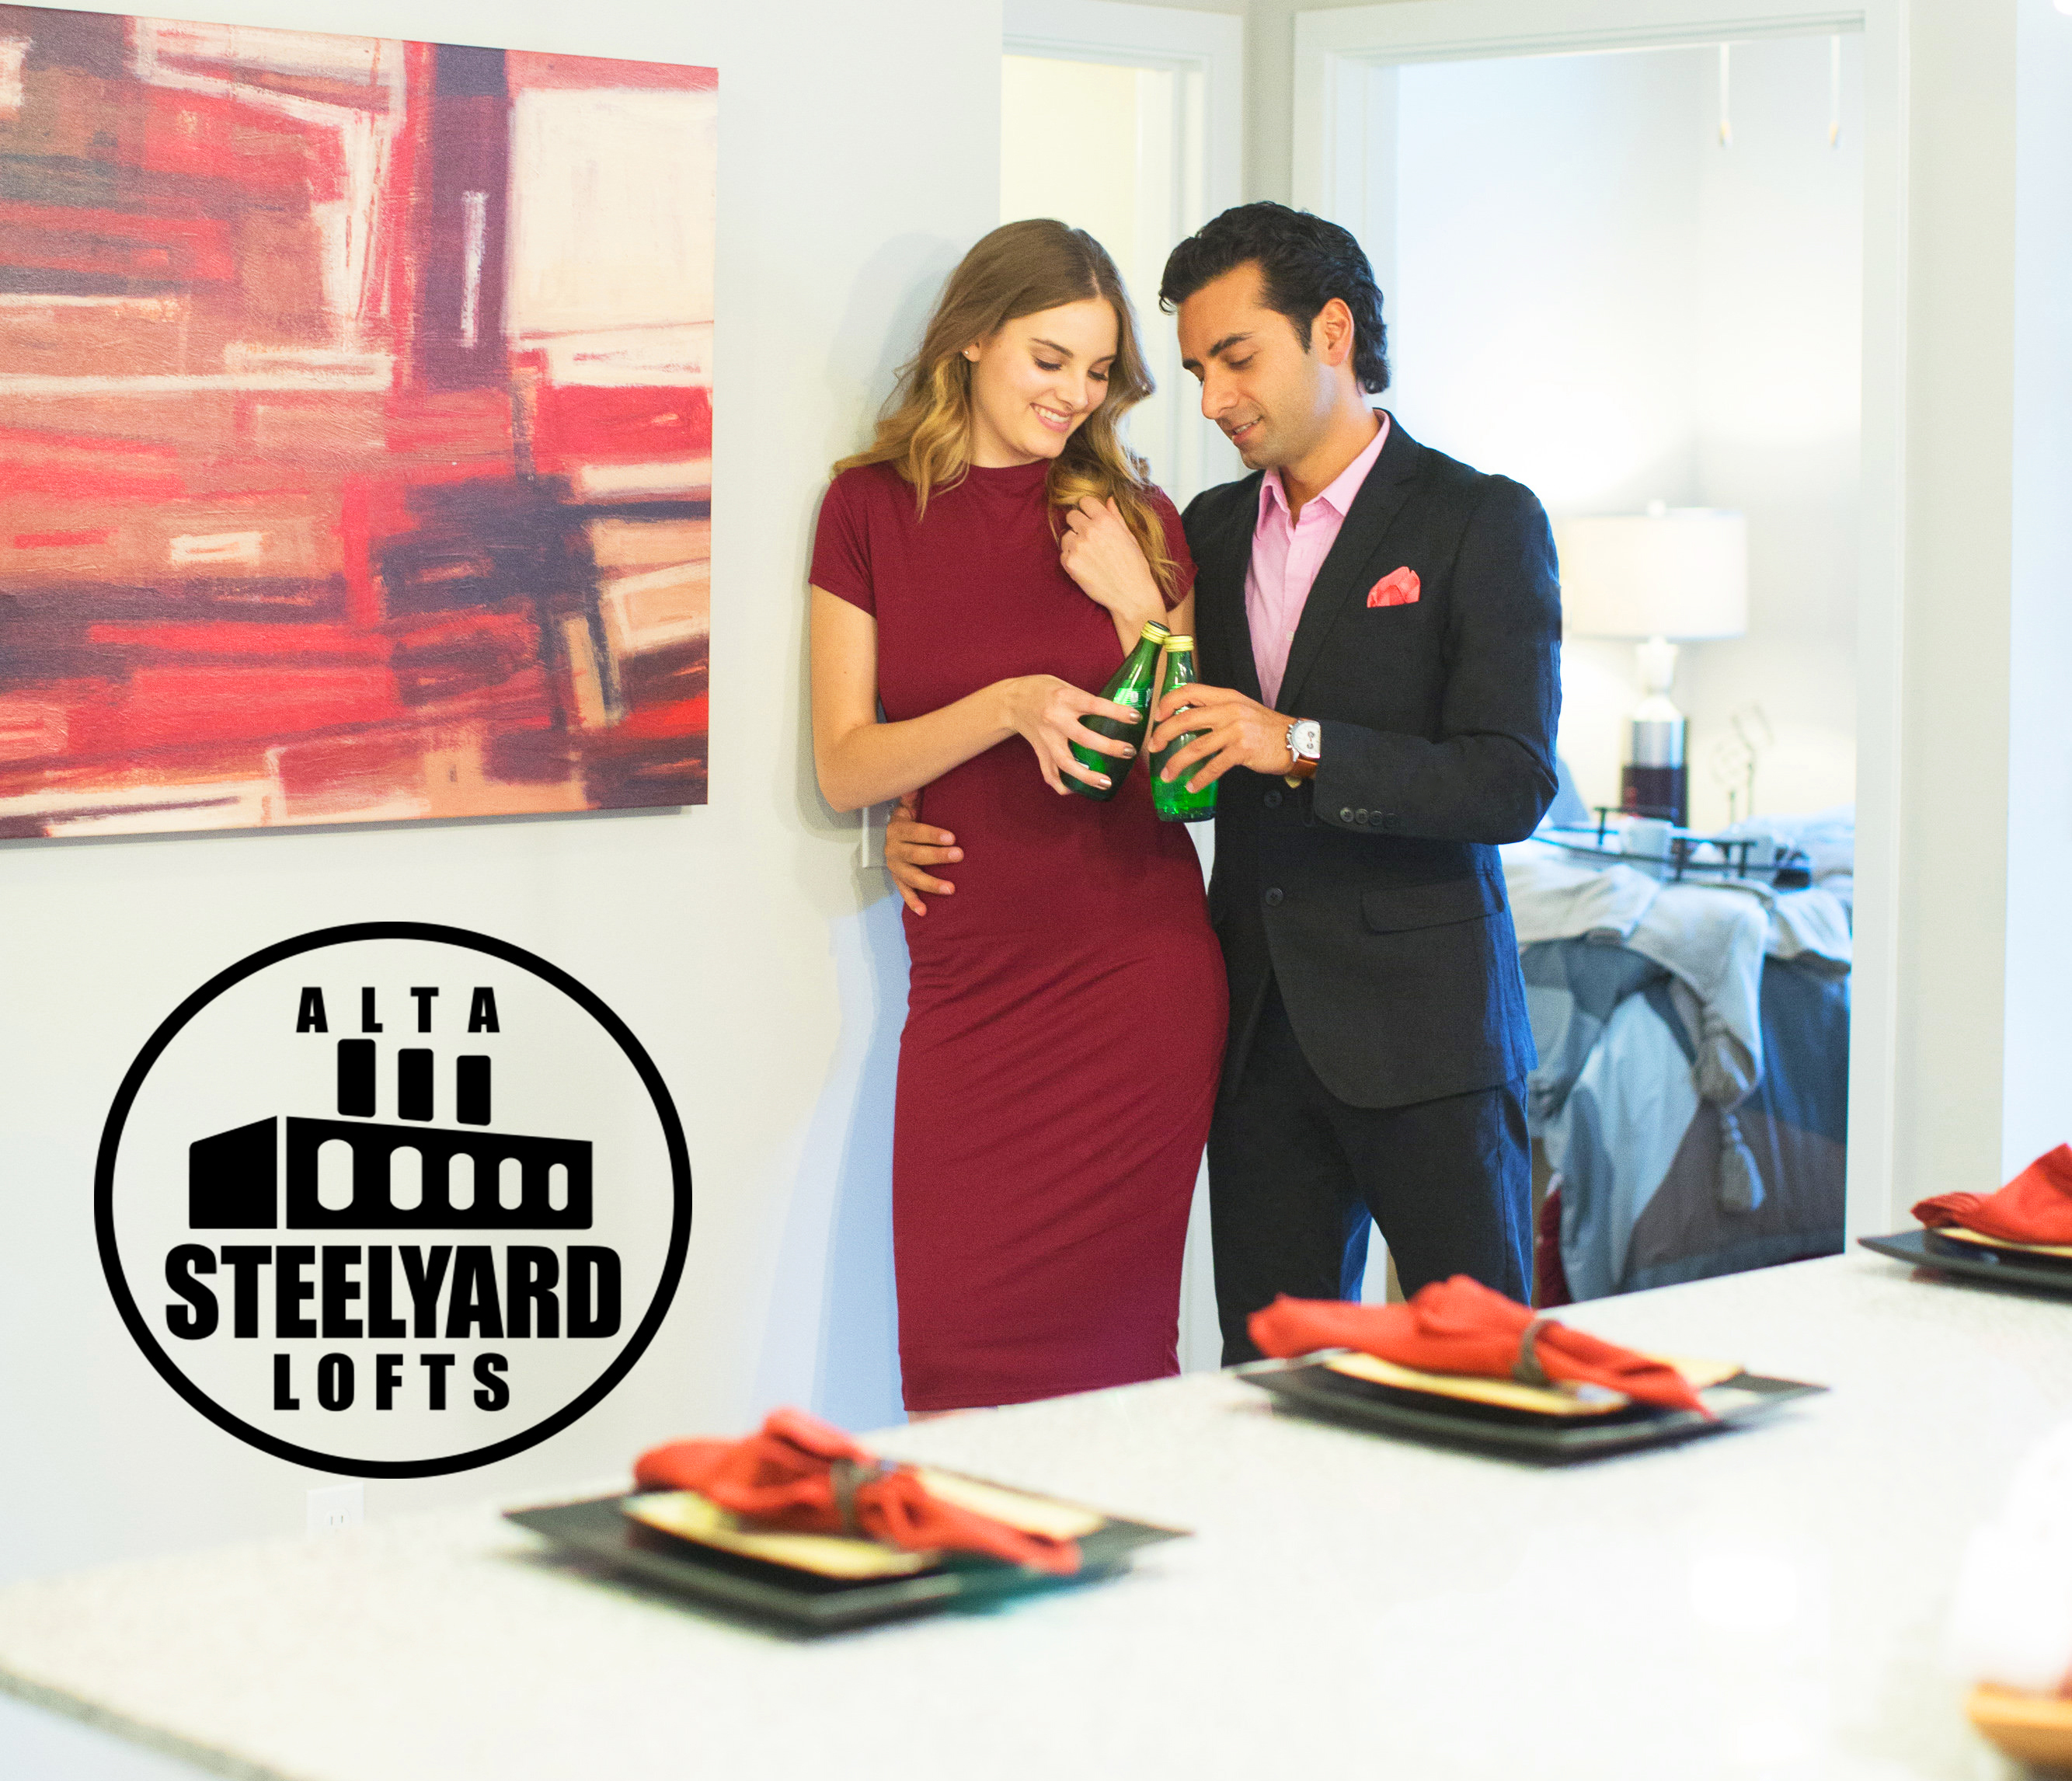 Alta Steel Yard Lofts Feature model